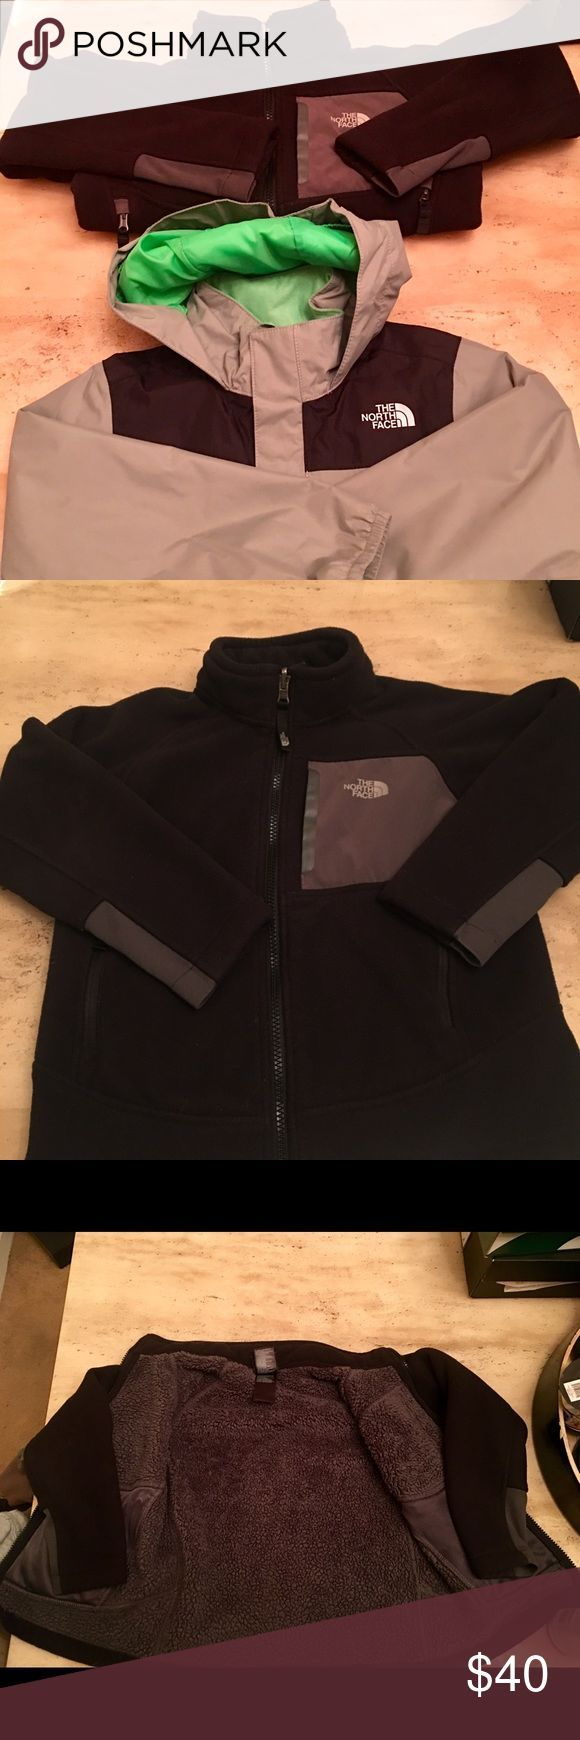 Little Boys North Face Jackets (Sale Pending)❌ Little Boys North Face Winter/Rain Jackets sz(5/6) Excellent Condition. Both jackets for $40 The North Face Jackets & Coats Raincoats